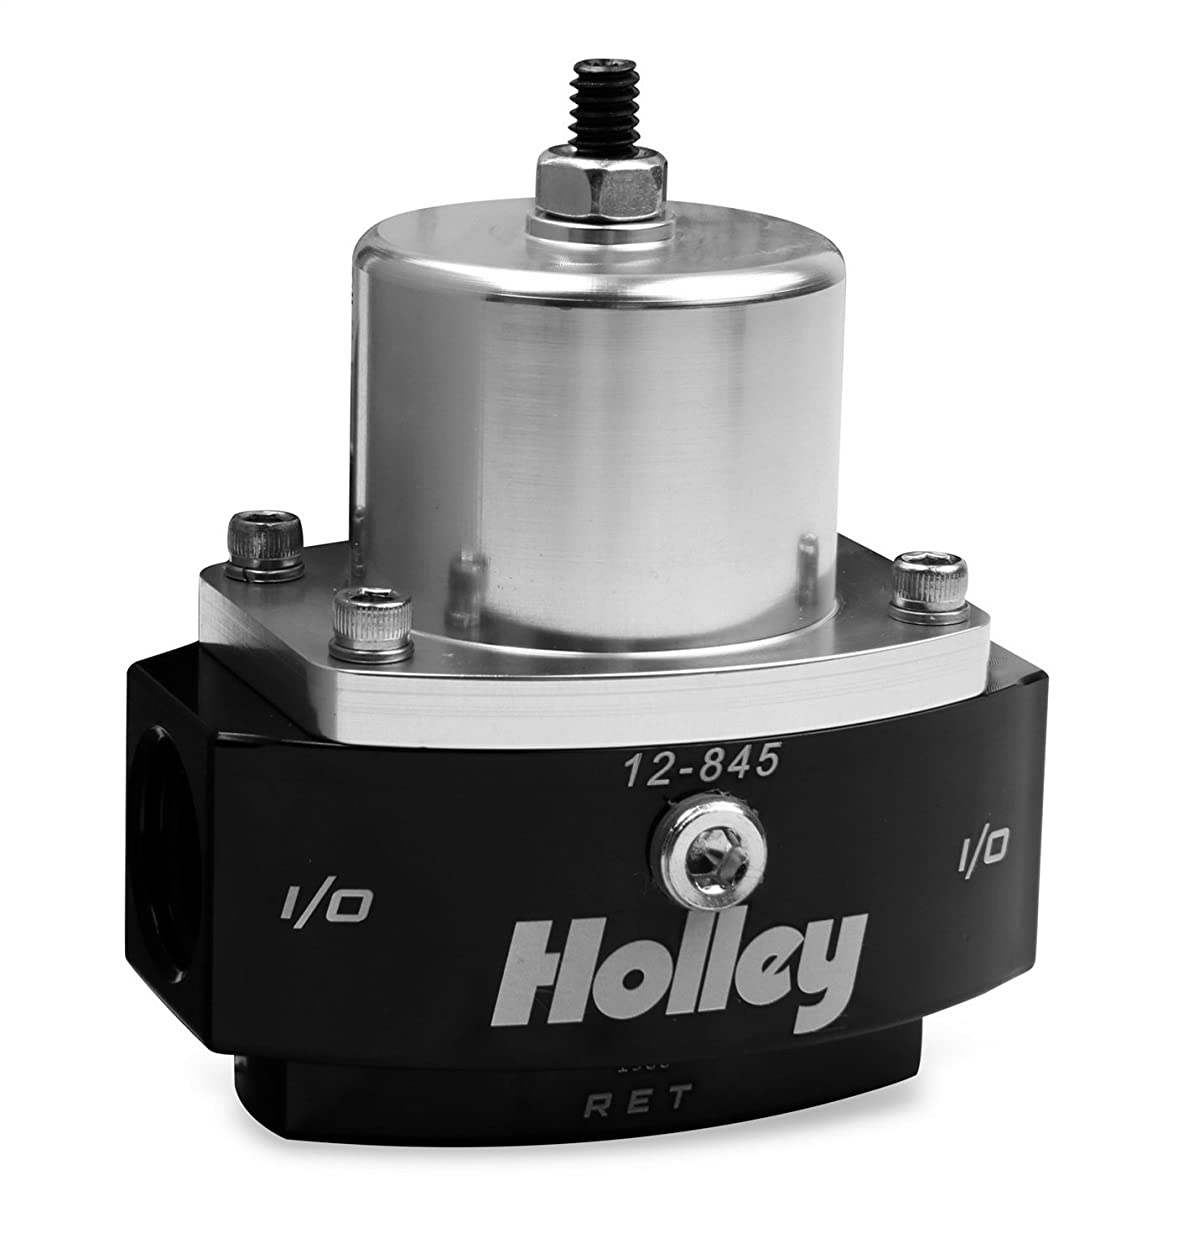 Holley 12-845 8AN Inlet / 2 x 6AN Outlet 4.5-9 PSI Adjustable Bypass Billet Fuel Pressure Regulator gucqx7515